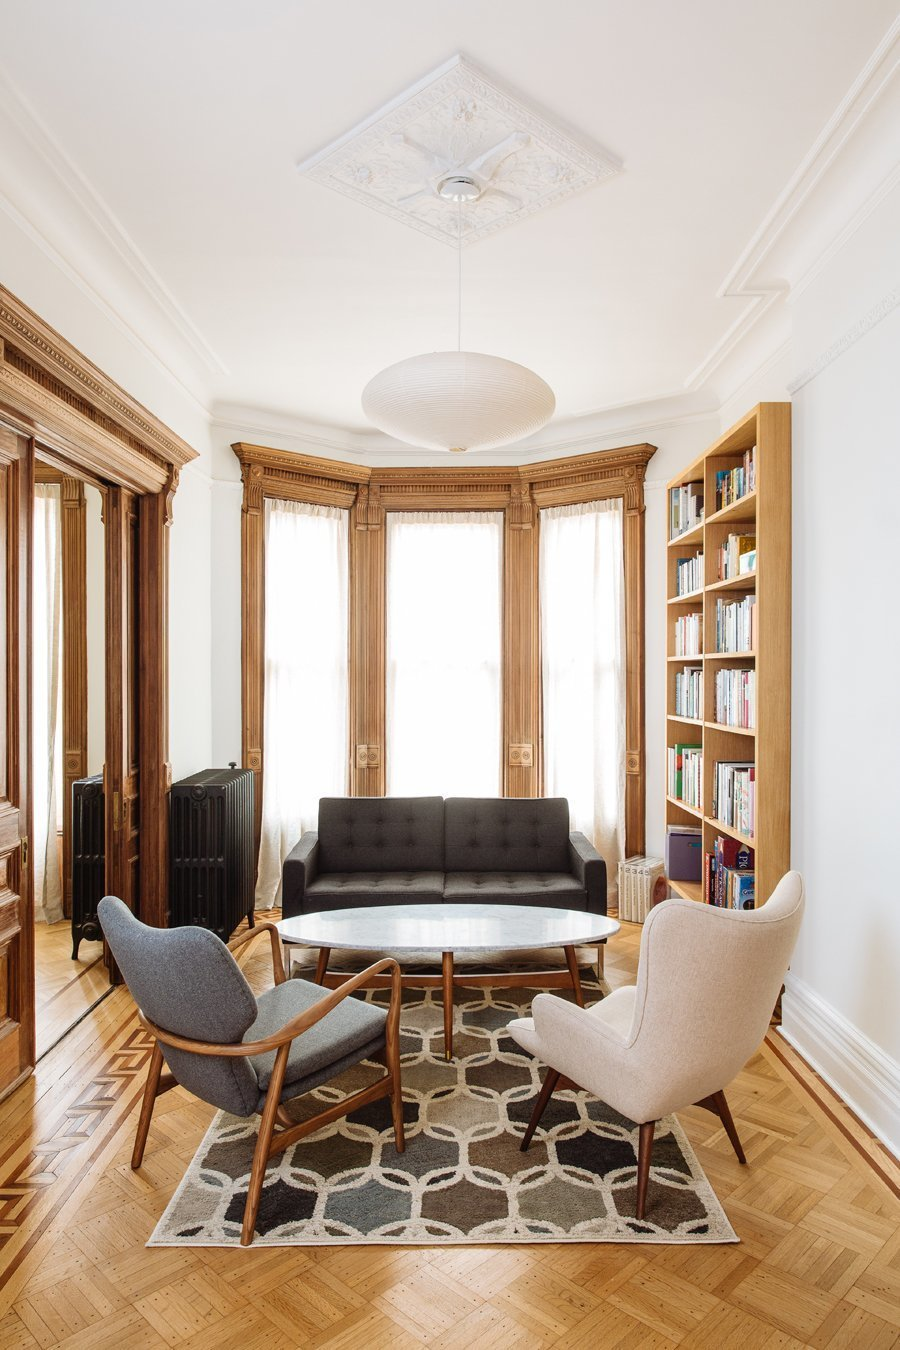 Living Room, Sofa, Chair, Coffee Tables, Bookcase, Shelves, Light Hardwood Floor, Rug Floor, and Pendant Lighting  Photo 3 of 5 in Top 4 Homes of the Week With Floor-to-Ceiling Windows